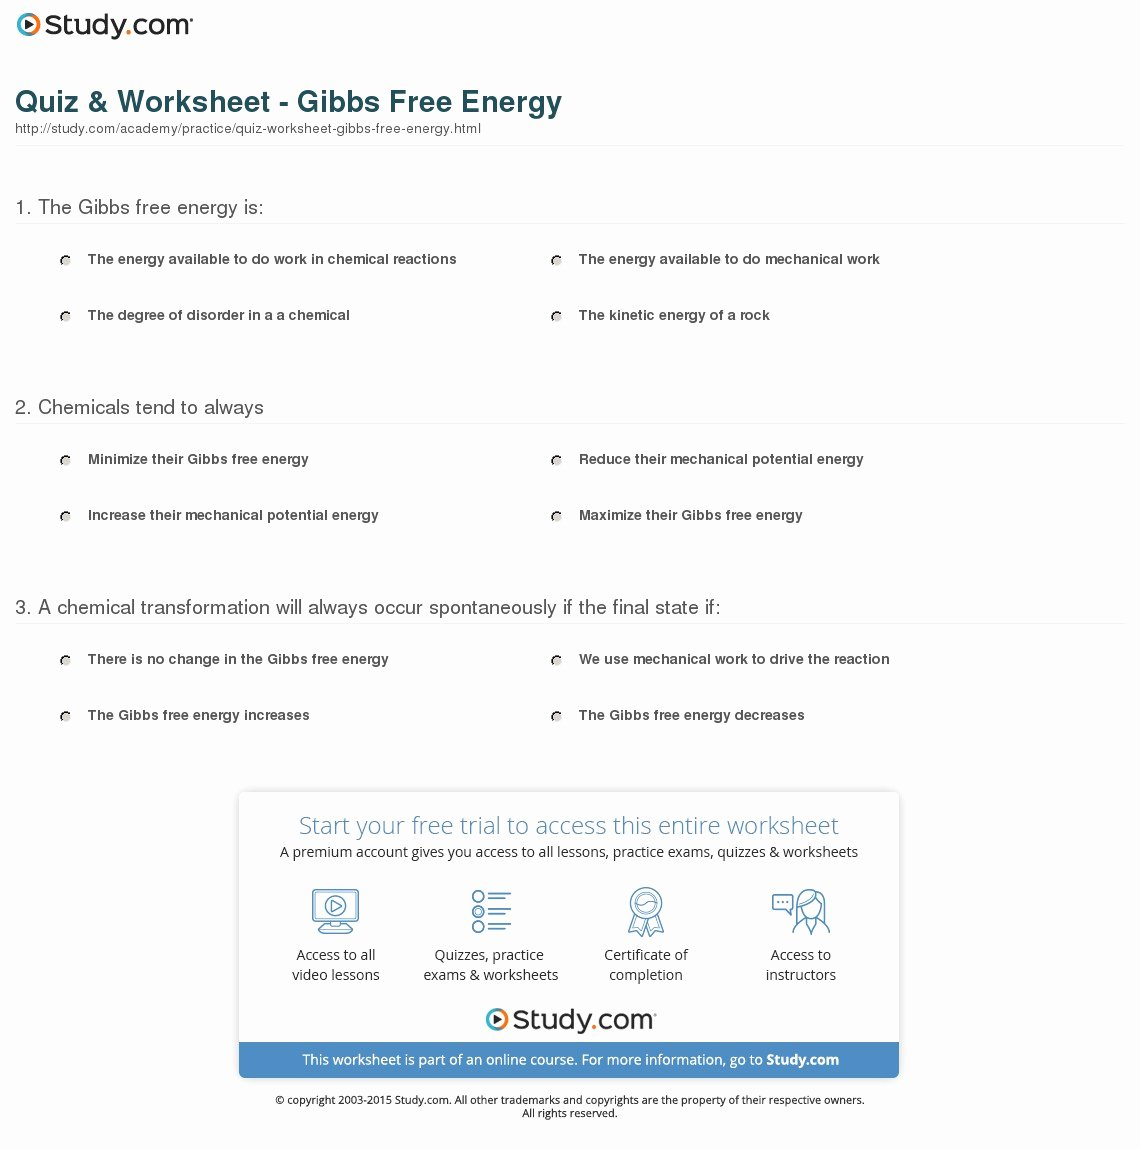 Gibbs Free Energy Worksheet Awesome Quiz & Worksheet Gibbs Free Energy